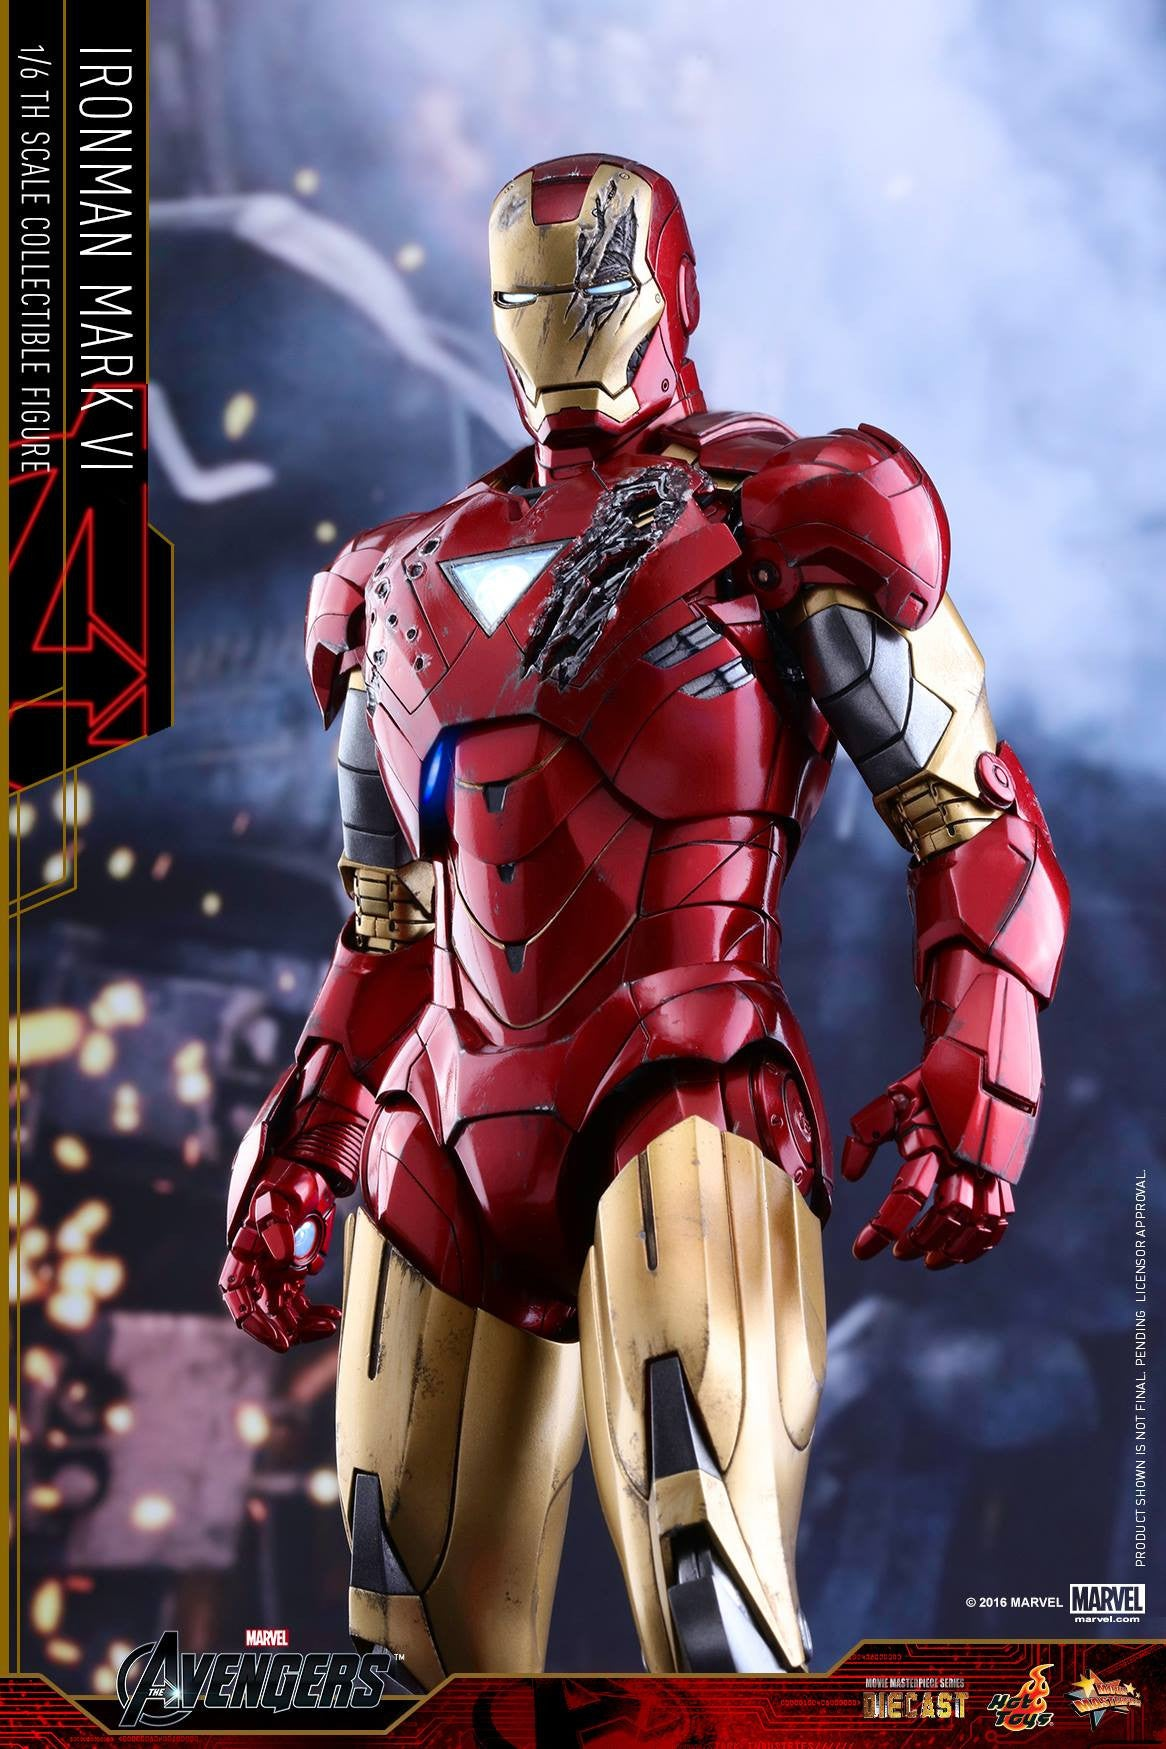 Hot Toys - MMS378D17 - The Avengers - Iron Man Mark VI (DIECAST) (Normal Edition) - Marvelous Toys - 16